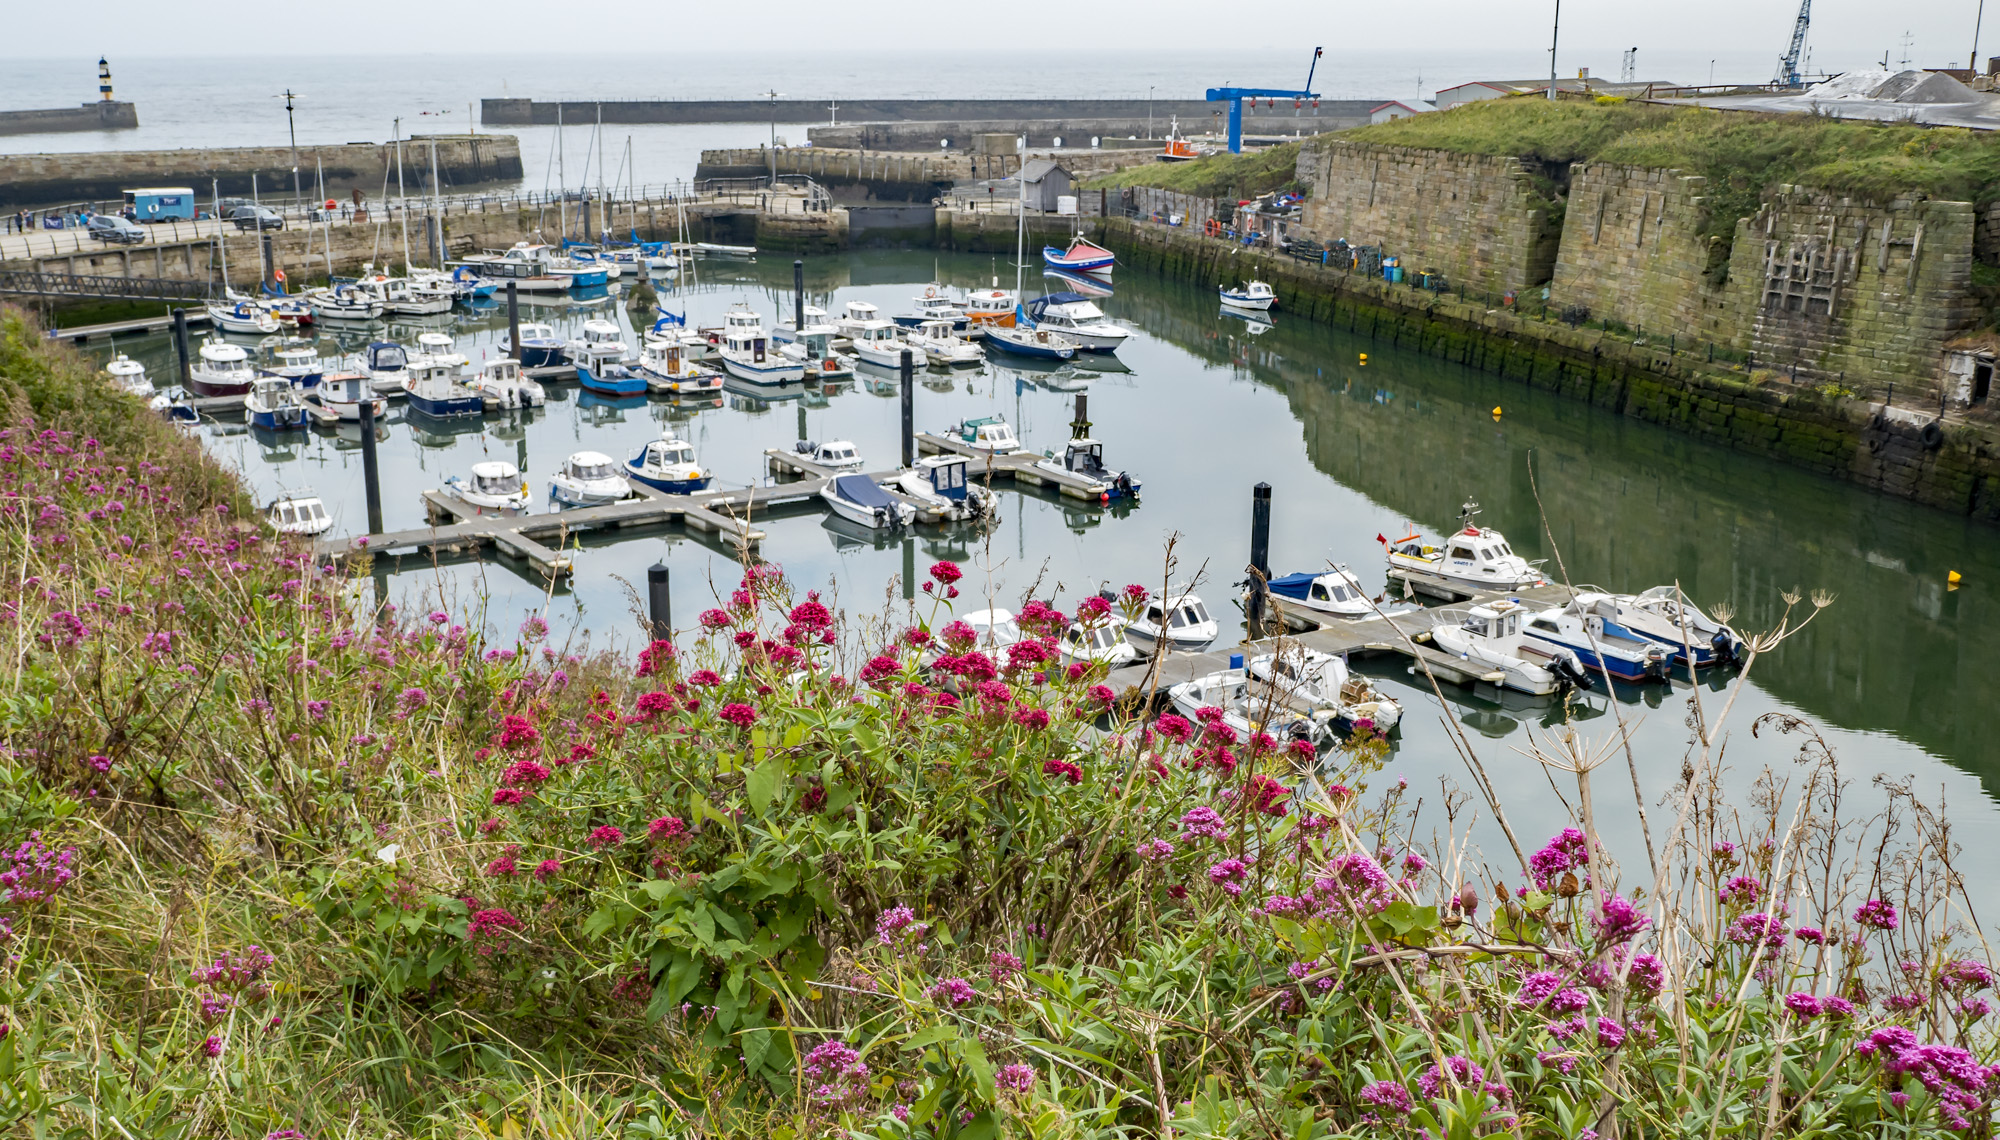 The Harbour, Seaham